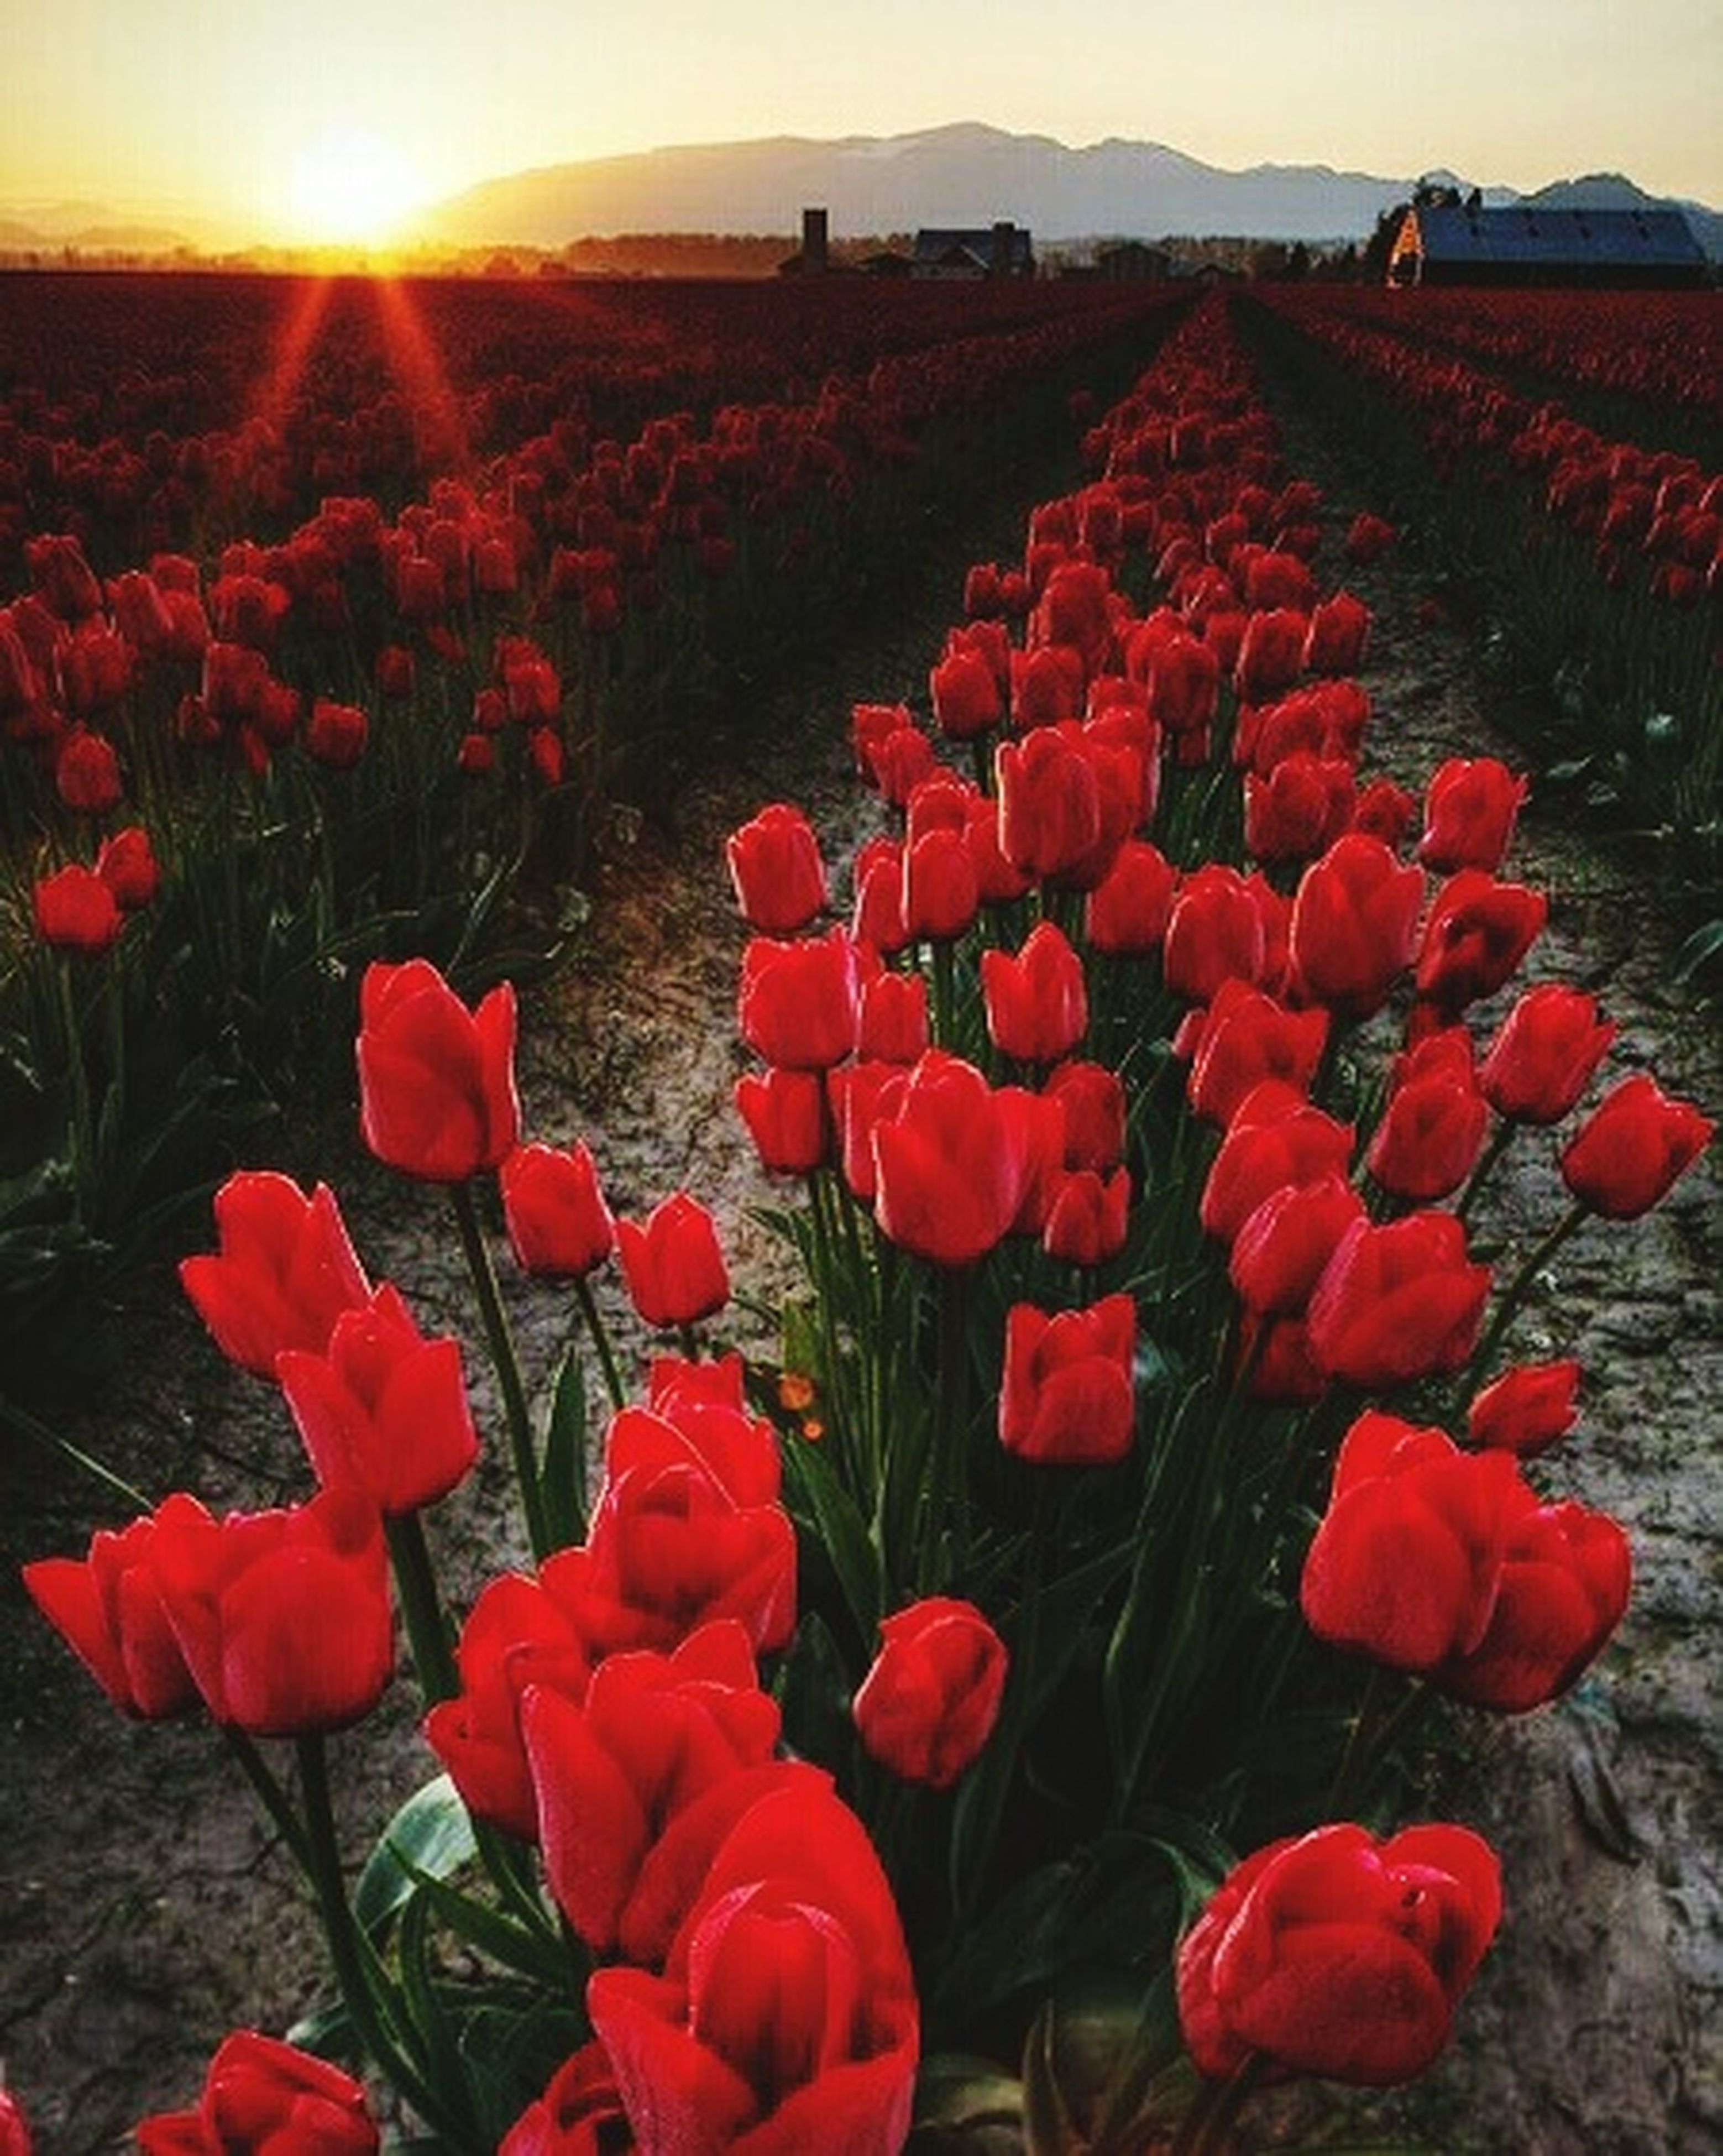 flower, red, field, freshness, beauty in nature, growth, nature, rural scene, landscape, tulip, plant, agriculture, abundance, fragility, poppy, tranquility, sky, blooming, petal, sunlight